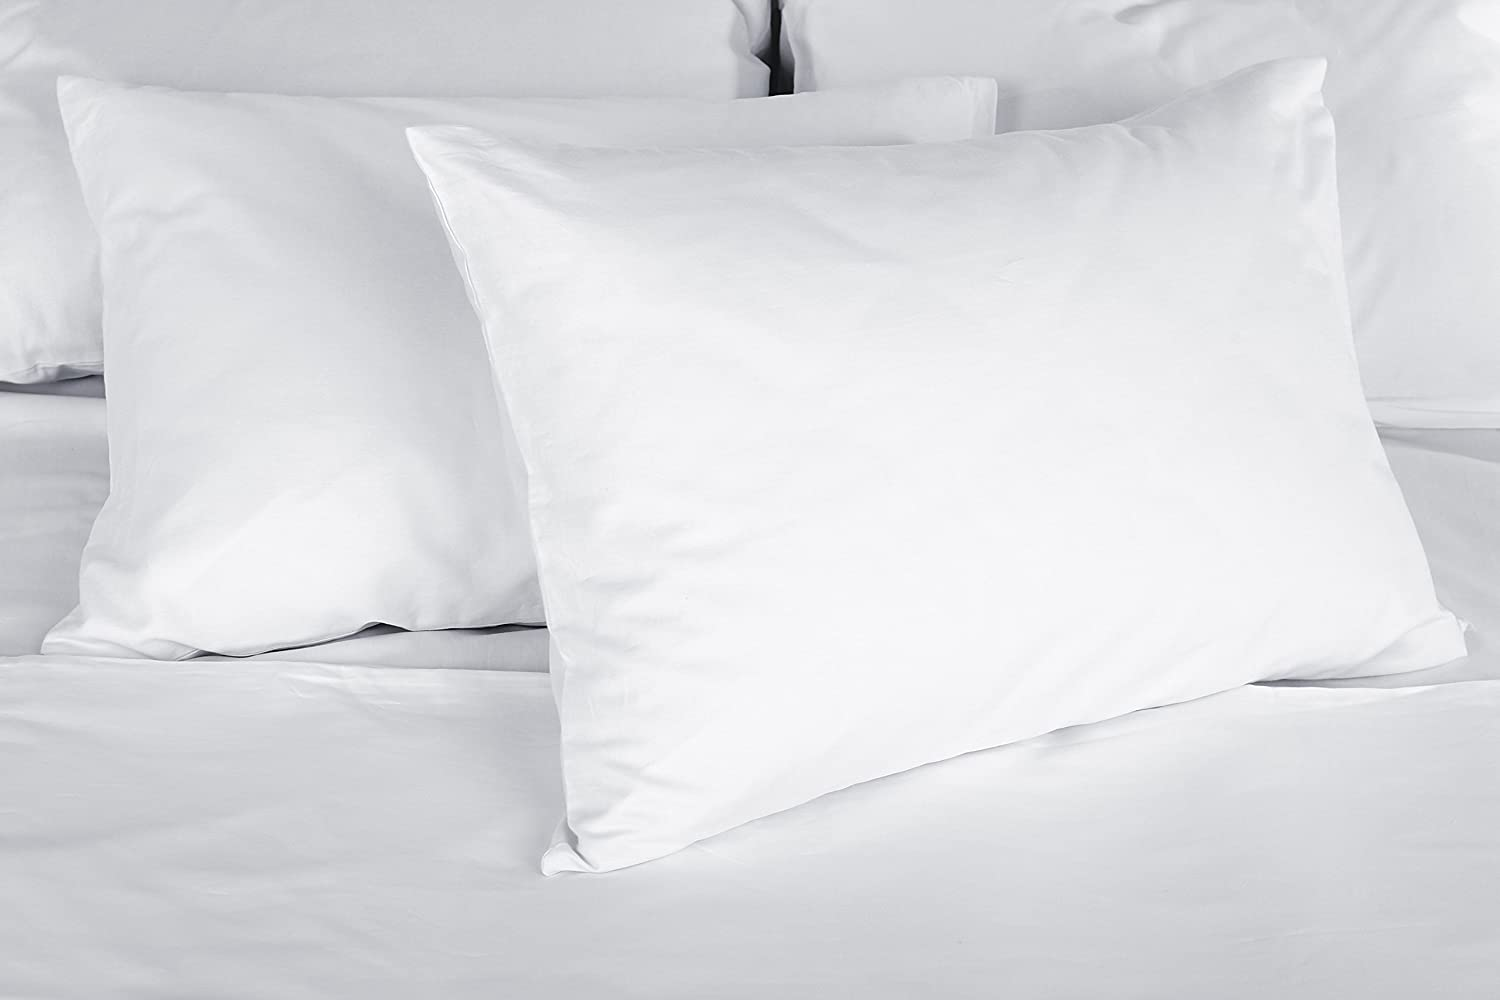 Continental Bedding P550-2-K White Goose Down Luxury Pillow, Soft. (Set of 2), King